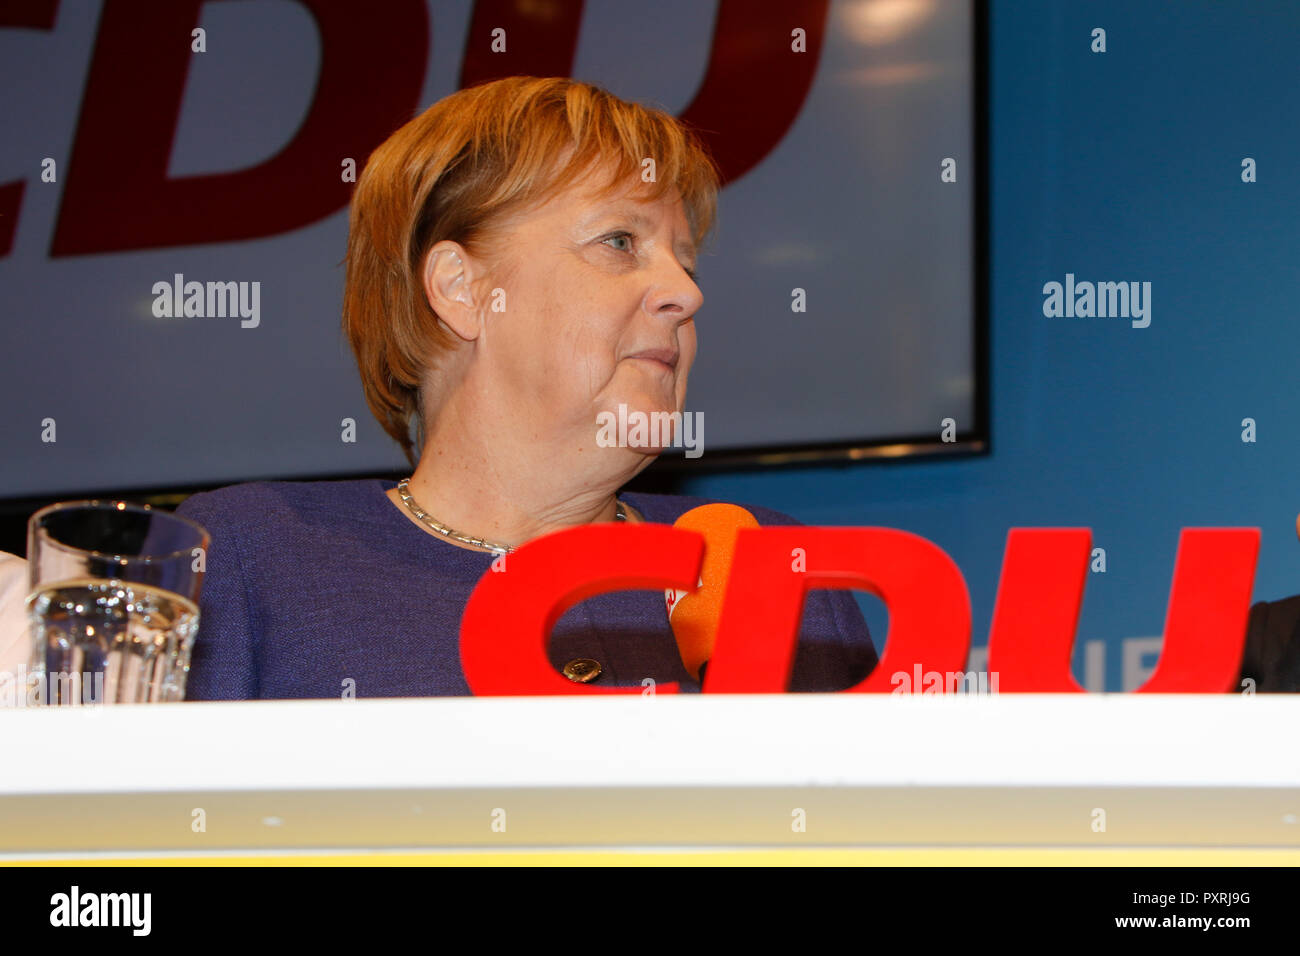 Dieburg, Germany. 23rd October 2018. Angela Merkel, the Chancellor of Germany, is pictured at the election rally. German Chancellor Angela Merkel attended a political rally of her CDU party in Dieburg ahead of the upcoming state election in the German state of Hesse. With less than a week to go to the election, the CDU is still leading the polls, but gas lost more than 10% compared to the last election. - Stock Image